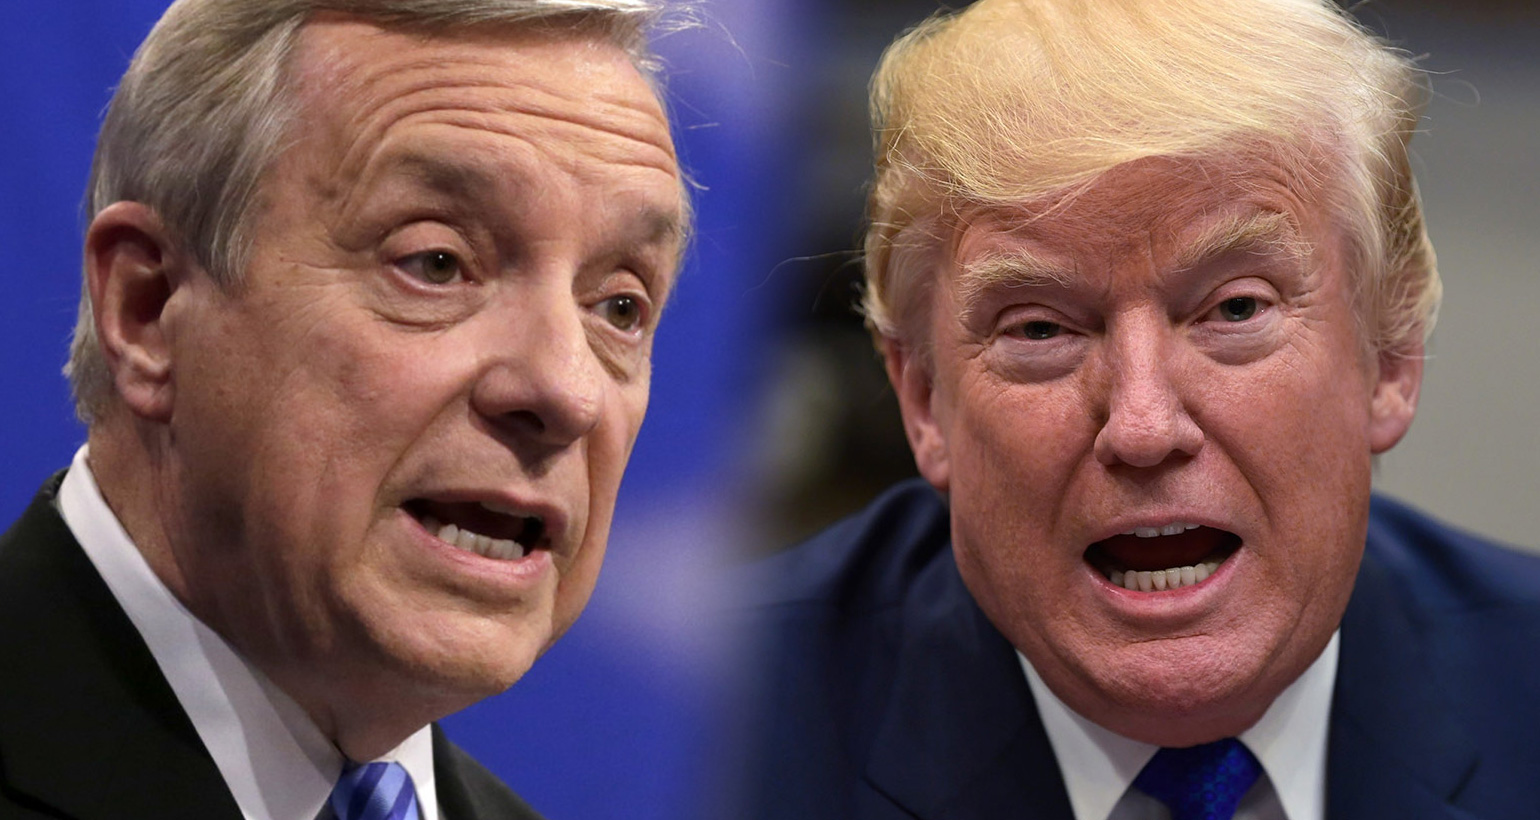 Senator Dick Durbin Demands White House Release Tape Of Trump's Racist  'Sh*thole' Slur